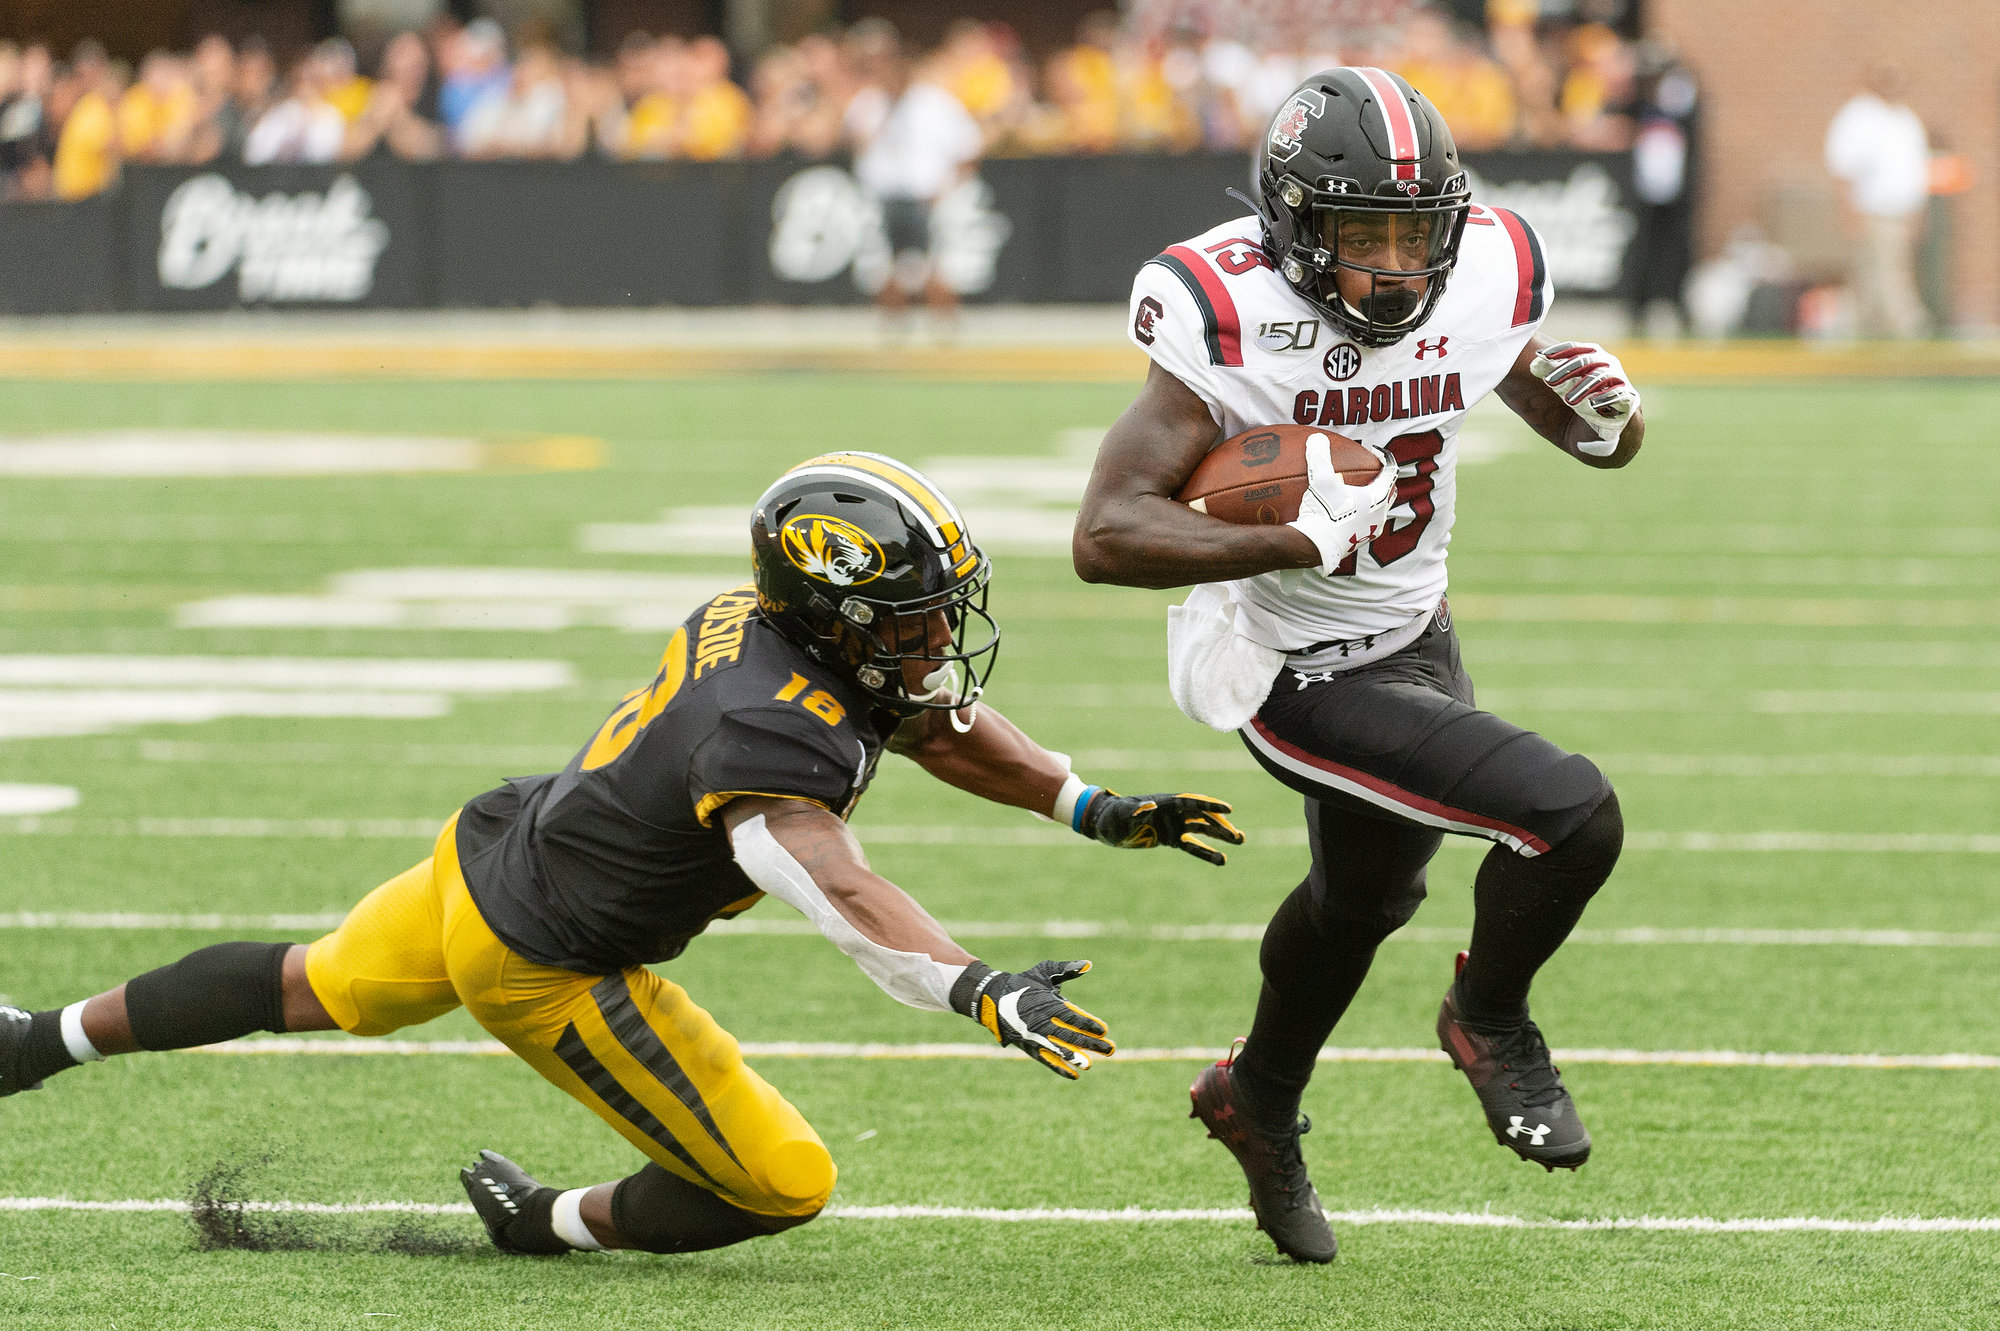 South Carolina wide receiver Shi Smith, right, runs past Missouri safety Joshuah Bledsoe, left, during the third quarter of an NCAA college football game Saturday, Sept. 21, 2019, in Columbia, Mo.